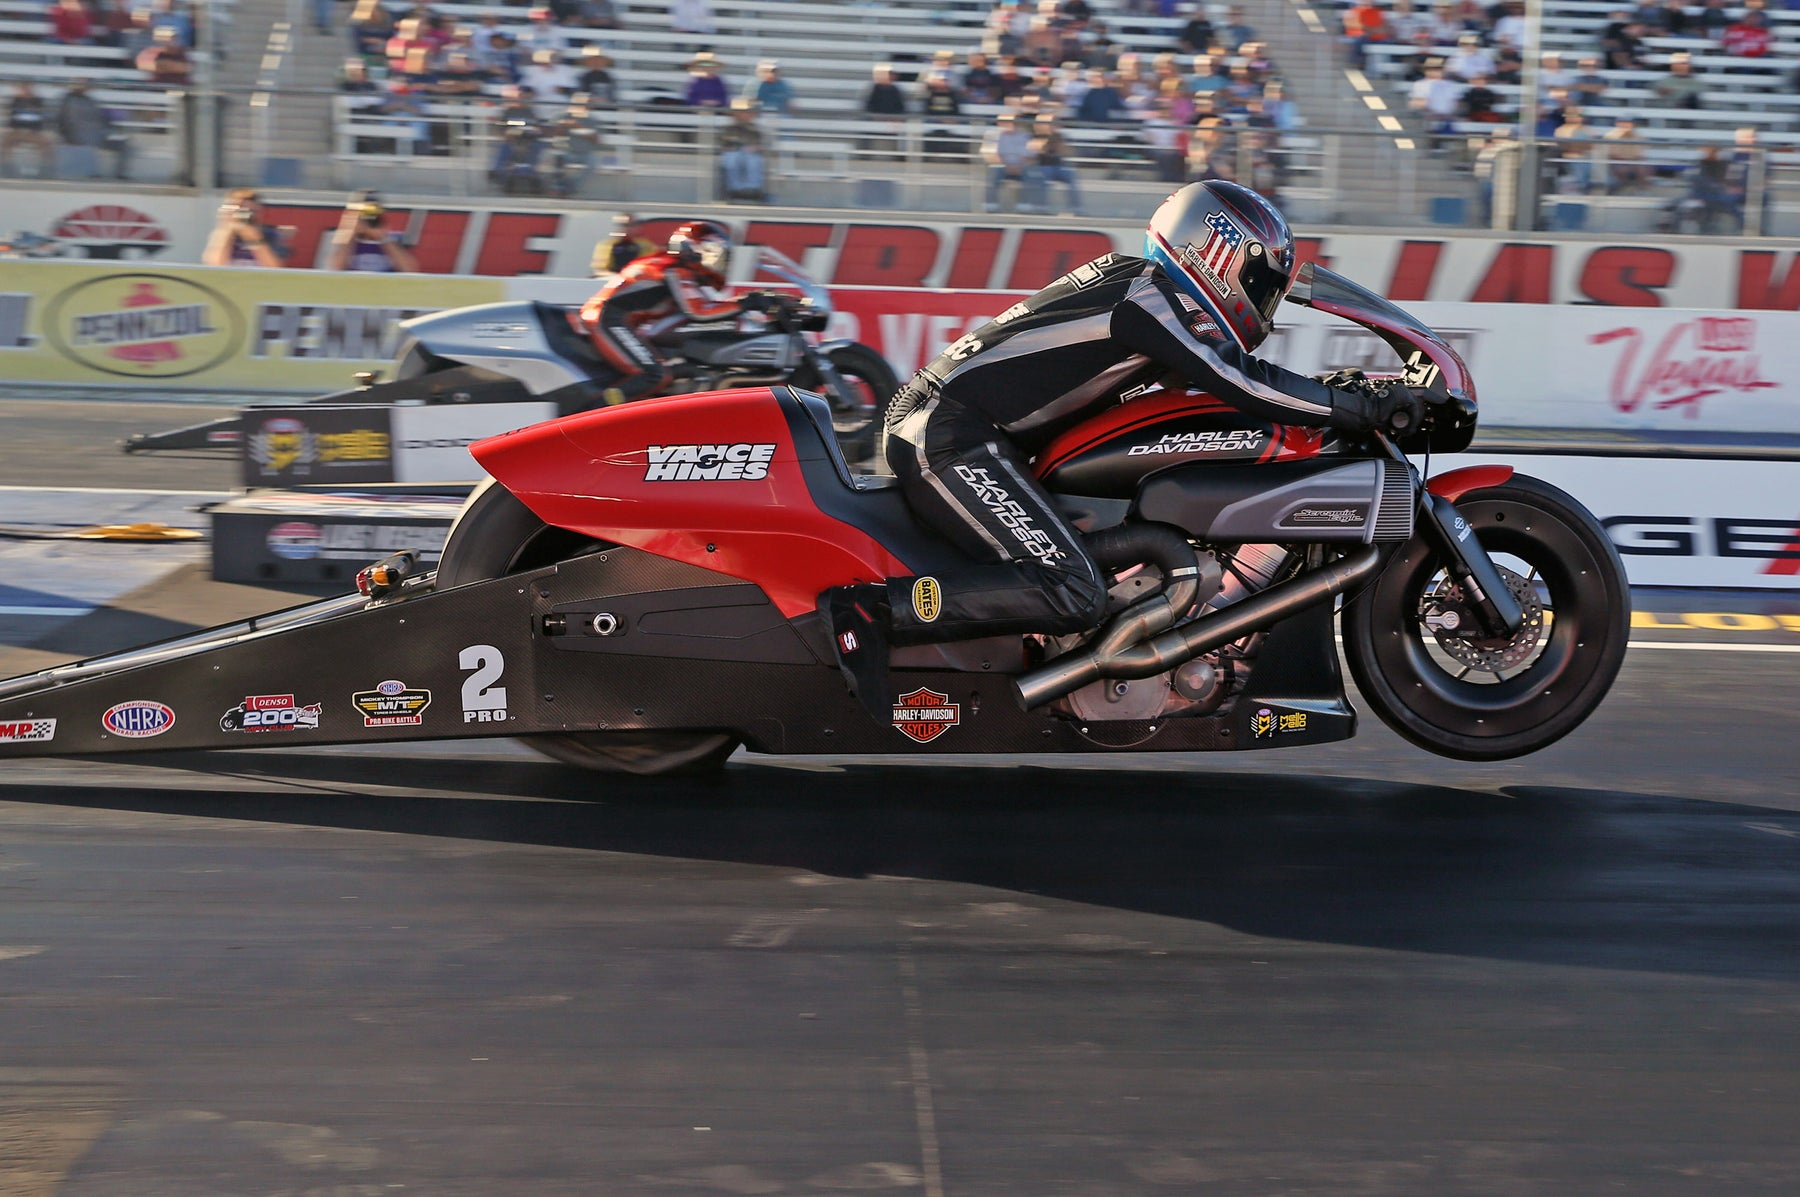 NHRA Pro Stock Motorcycle Racing